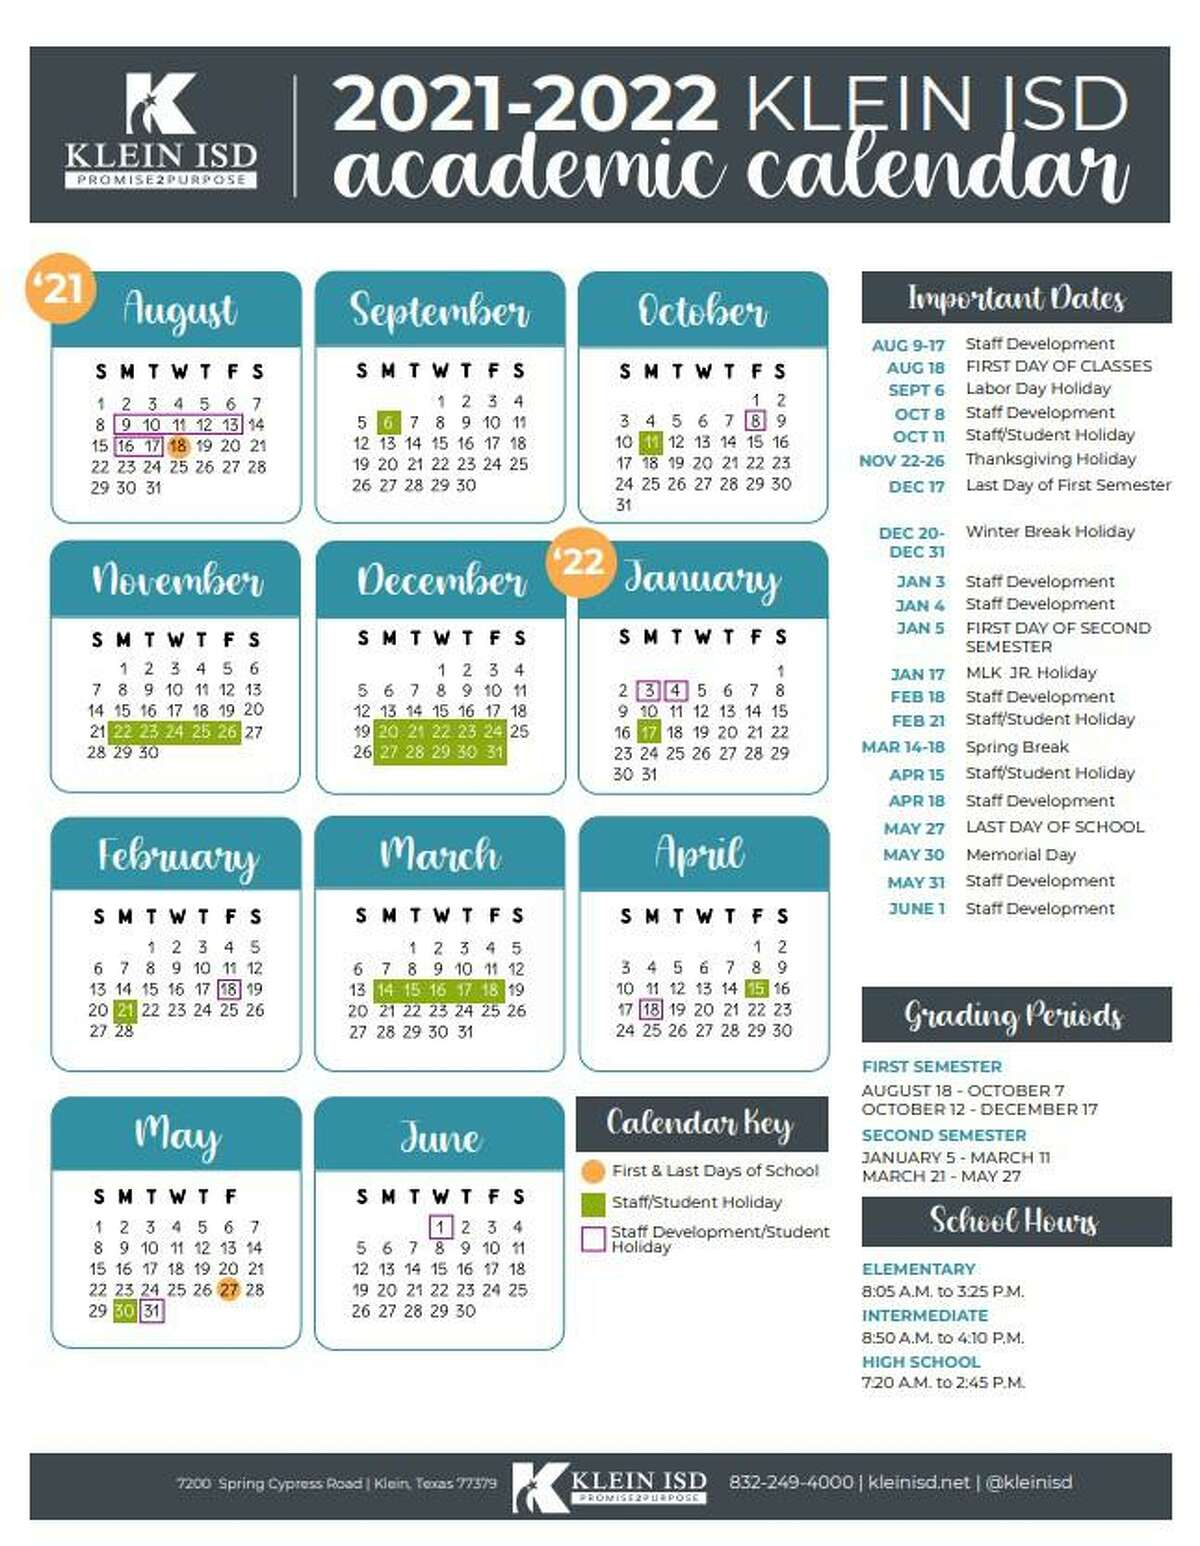 Houston Isd Calendar 2022 23.H O U S T O N I S D 2 0 2 1 2 0 2 2 C A L E N D A R Zonealarm Results